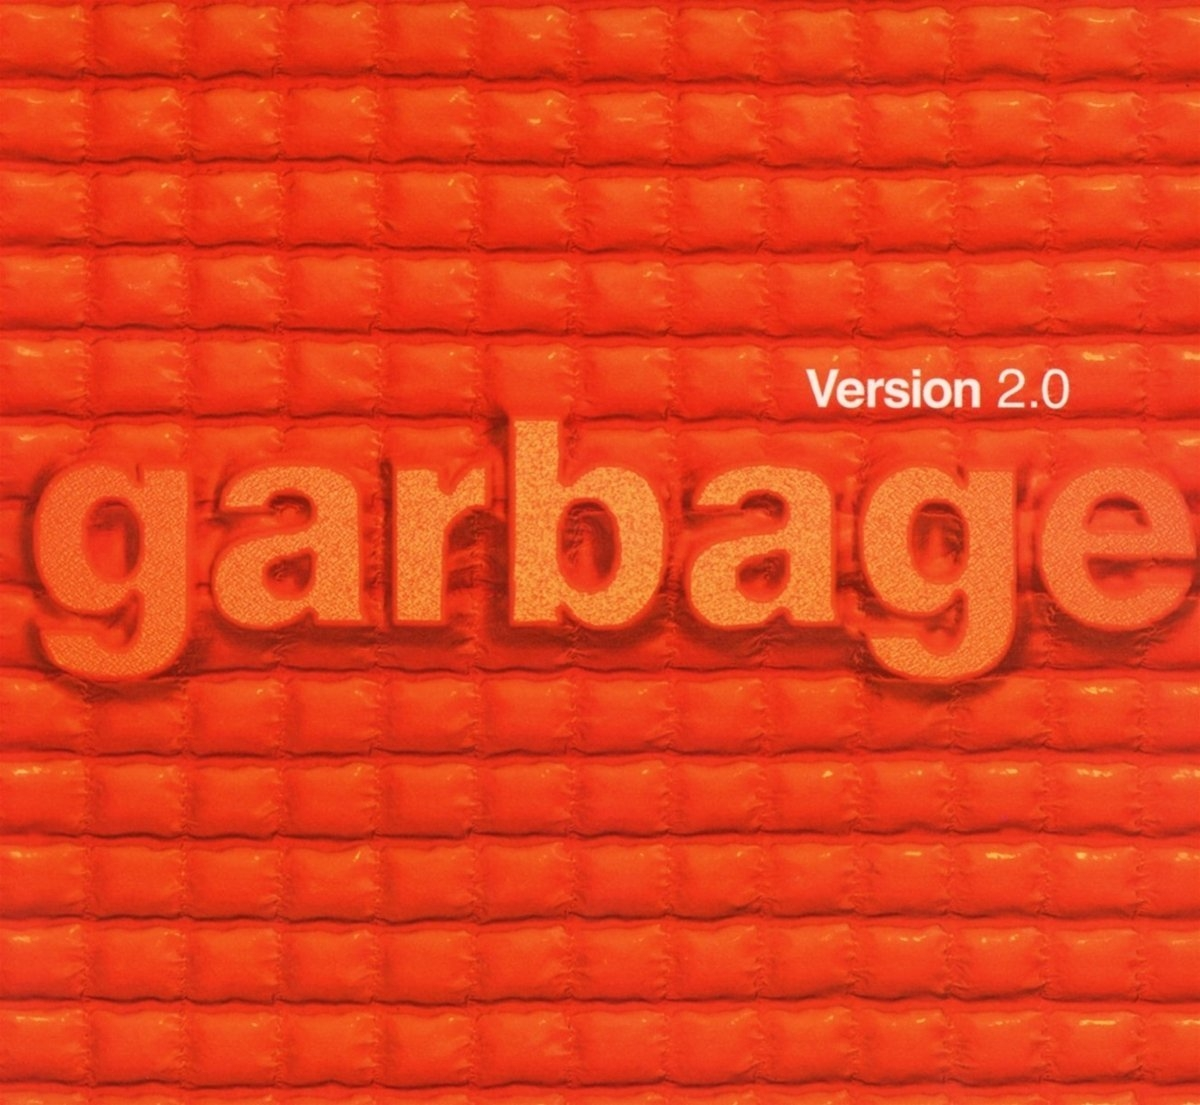 catalog 07 18 Garbage